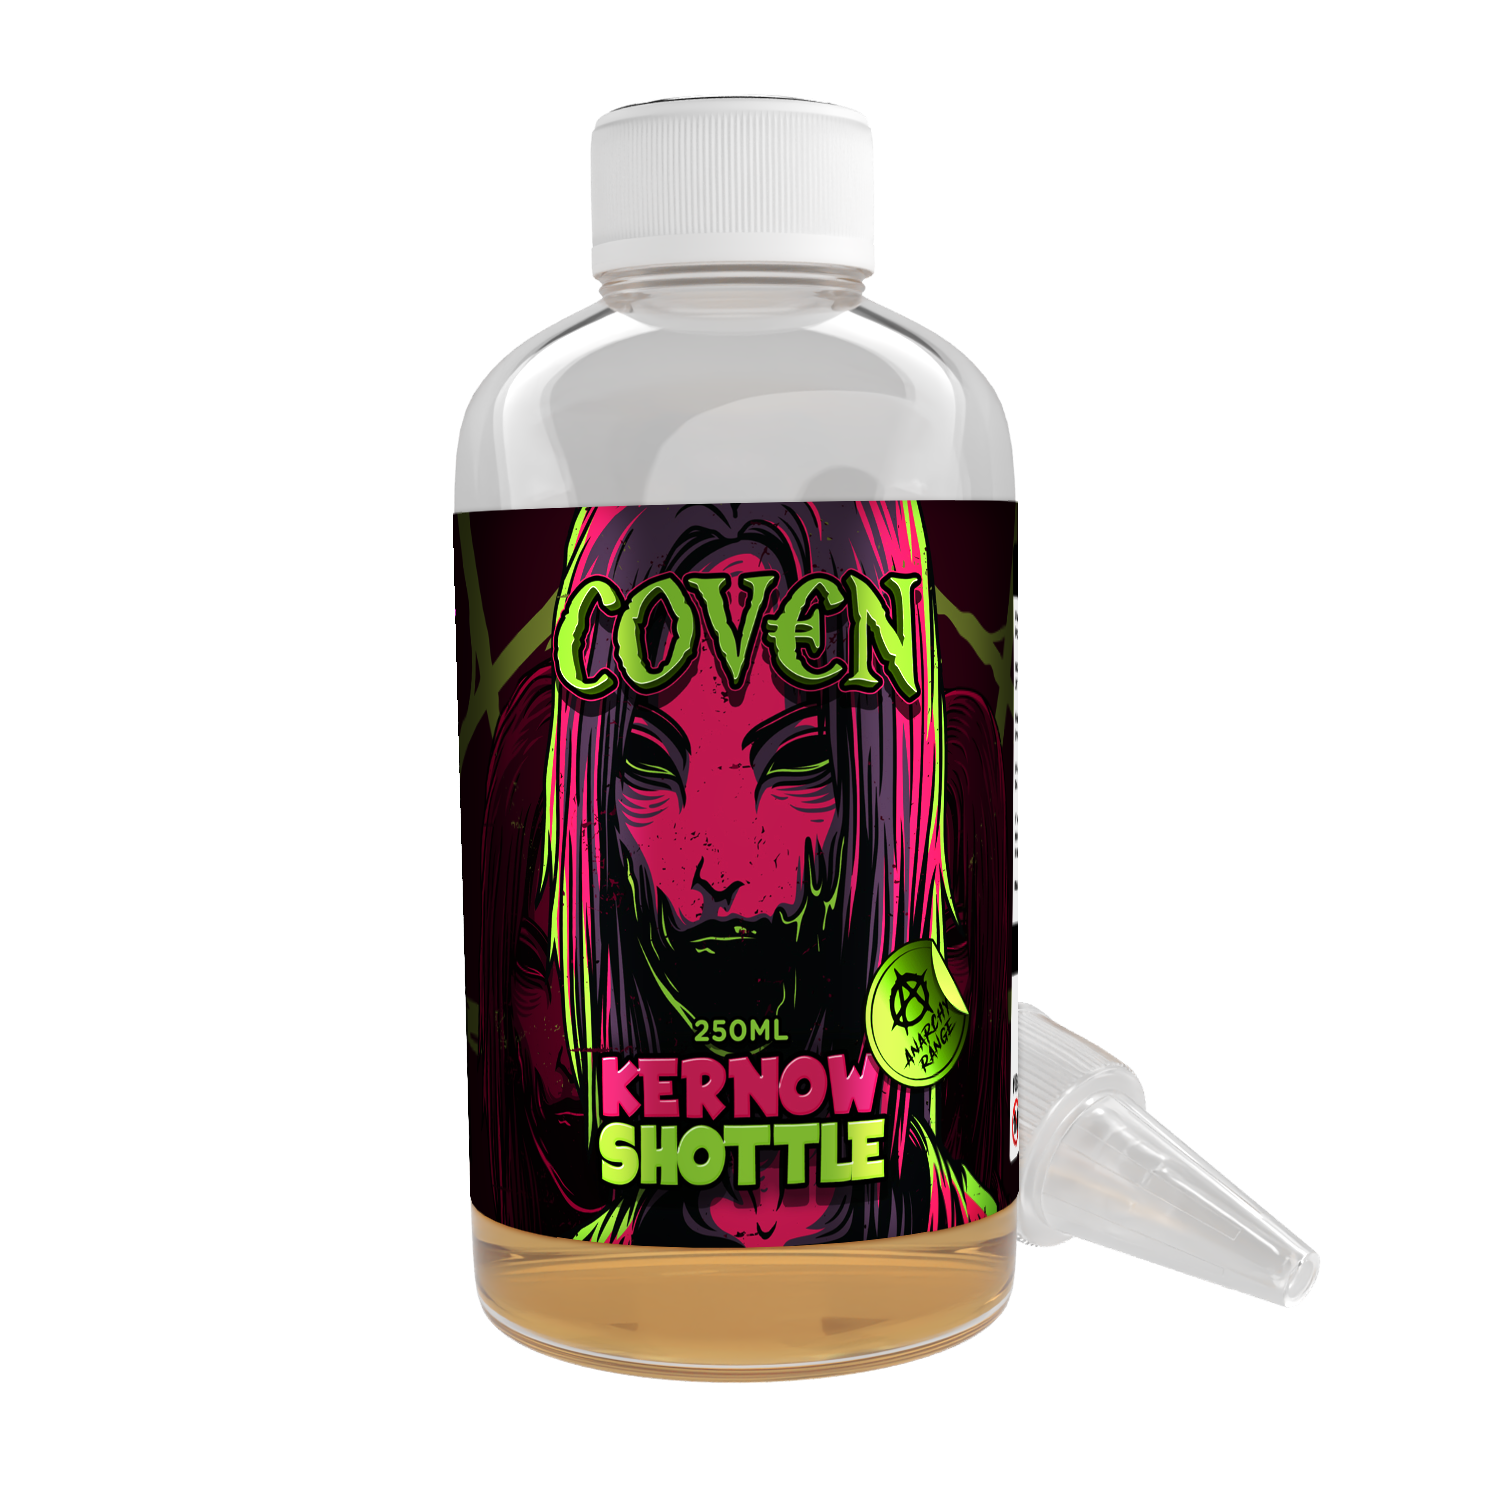 Coven Shottle Flavour Shot by Kernow - 250ml